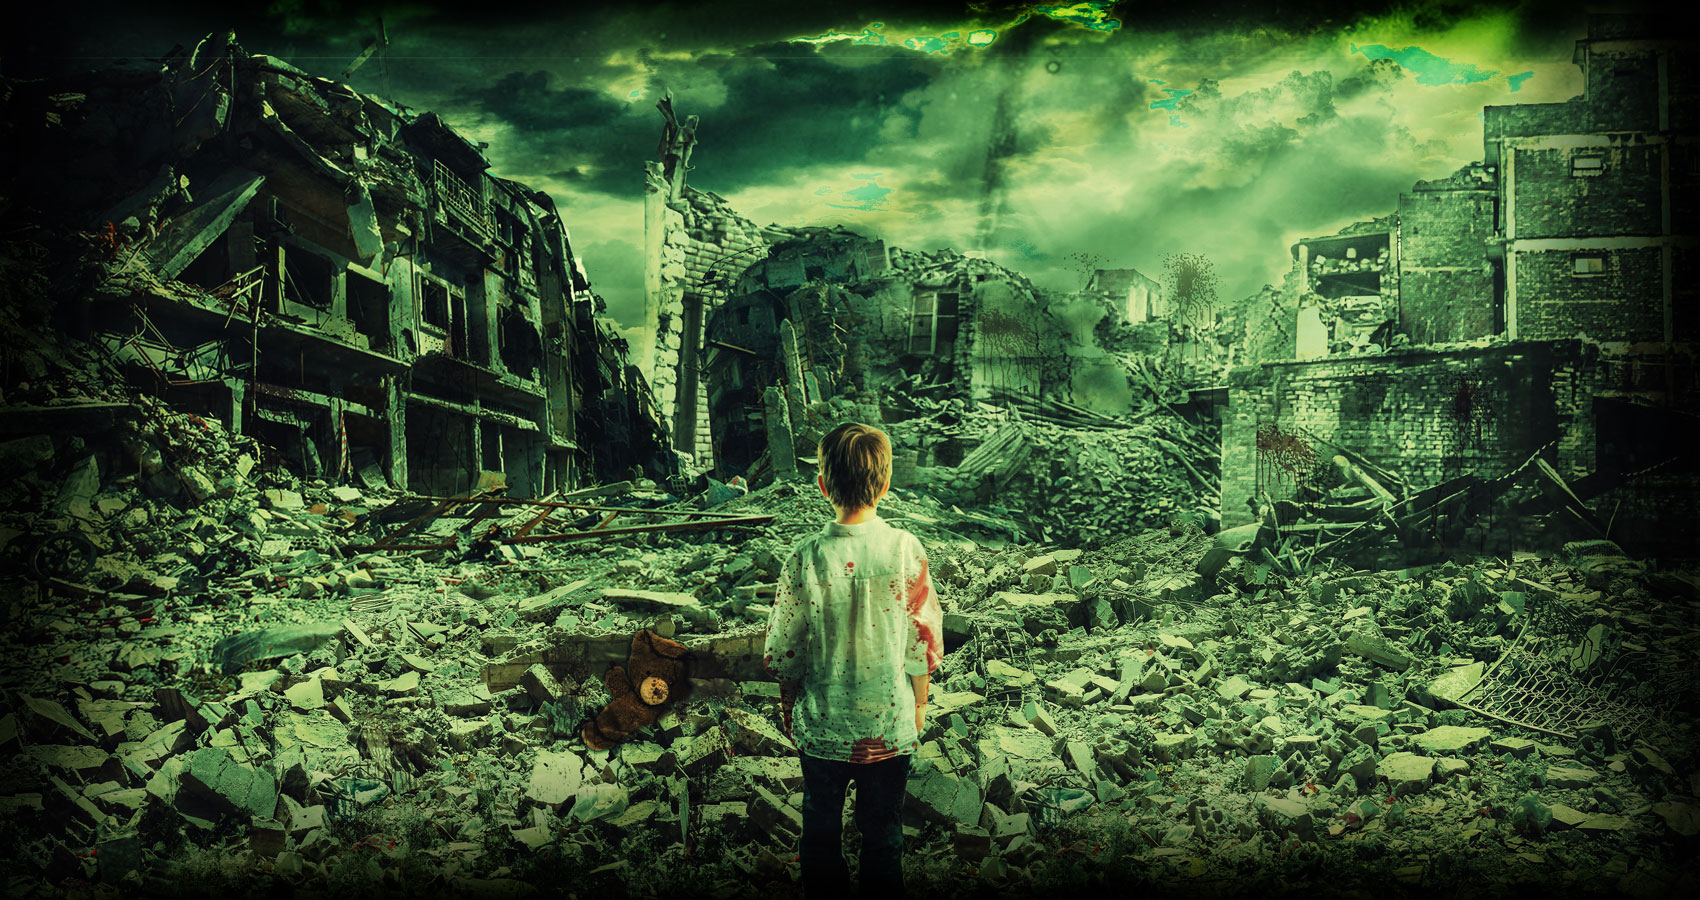 War From the View of Mother Earth, short story by Kerri Jesmer at Spillwords.com